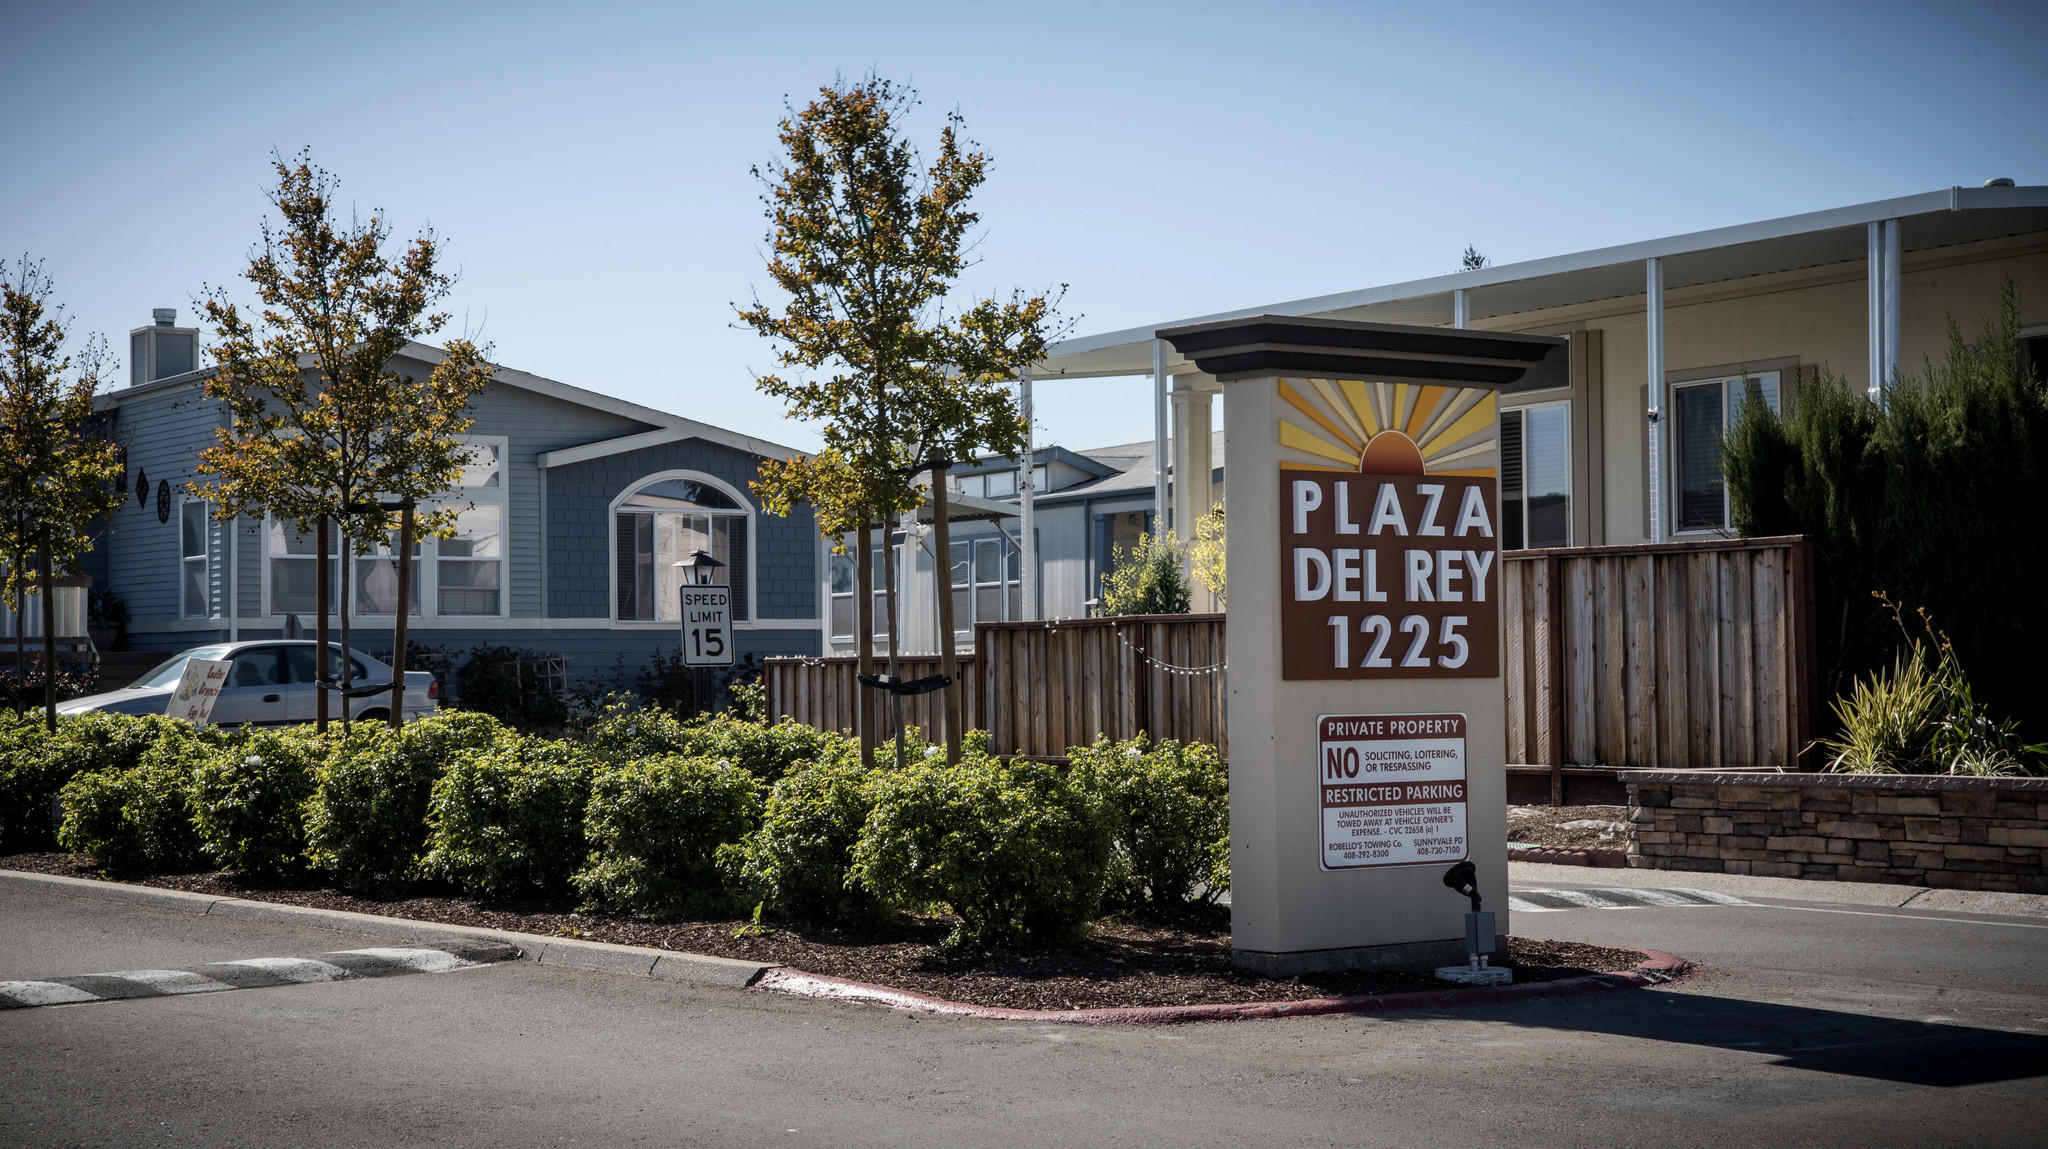 The Plaza Del Rey Mobile Home Park In Heart Of Silicon Valley Was Sold To